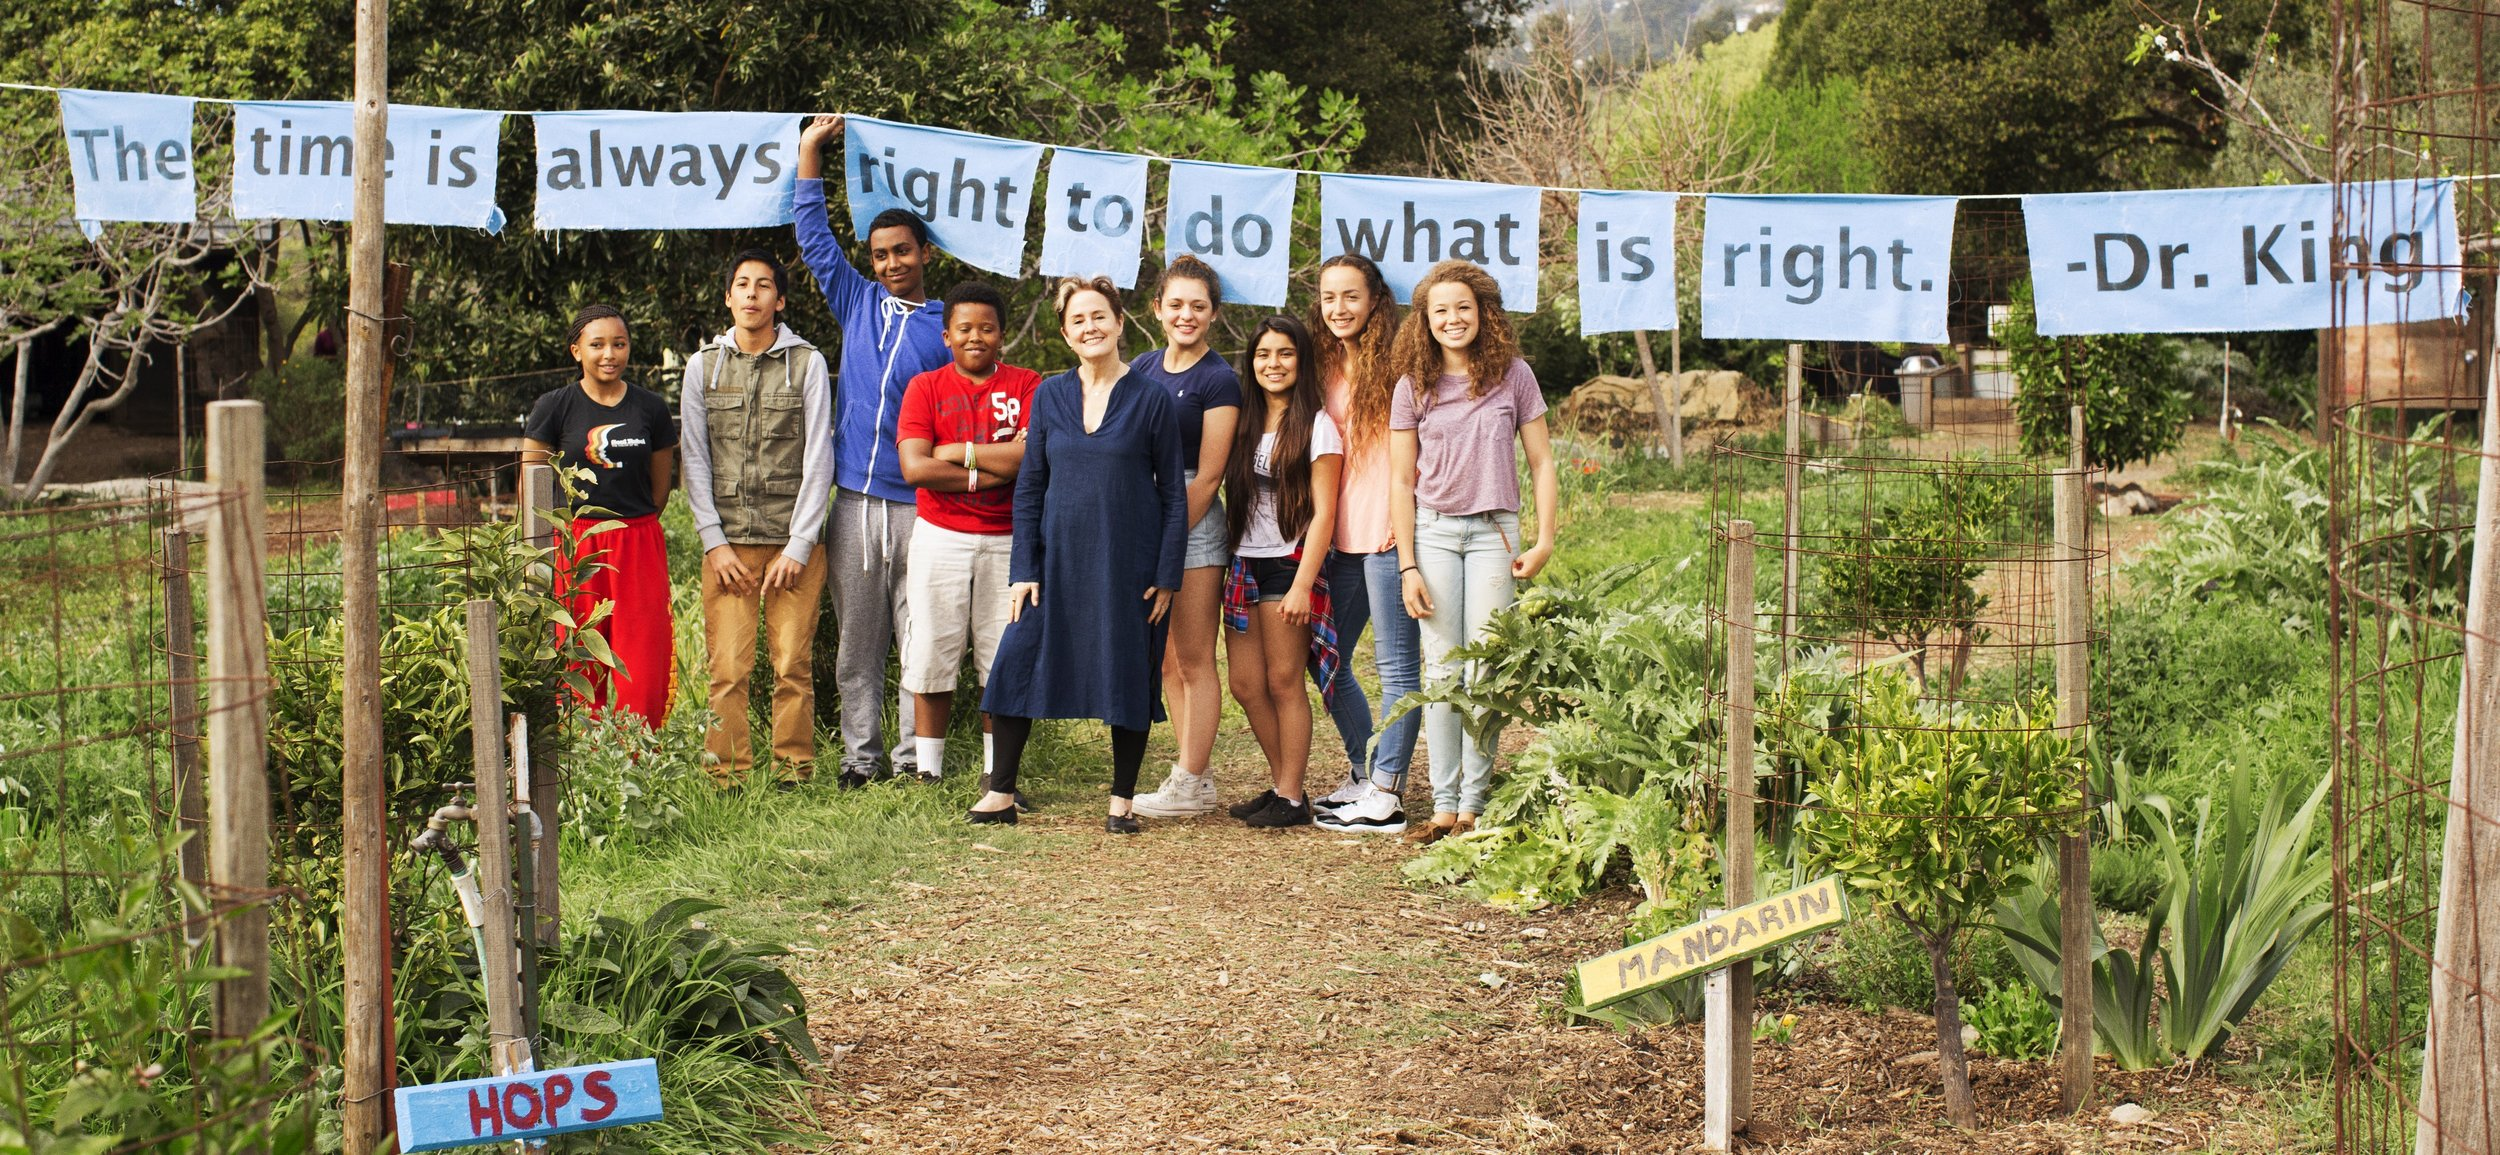 Alice Waters with students in her Edible Schoolyard Project, which advocates for a free school lunch for all children and a sustainable food curriculum in every public school.